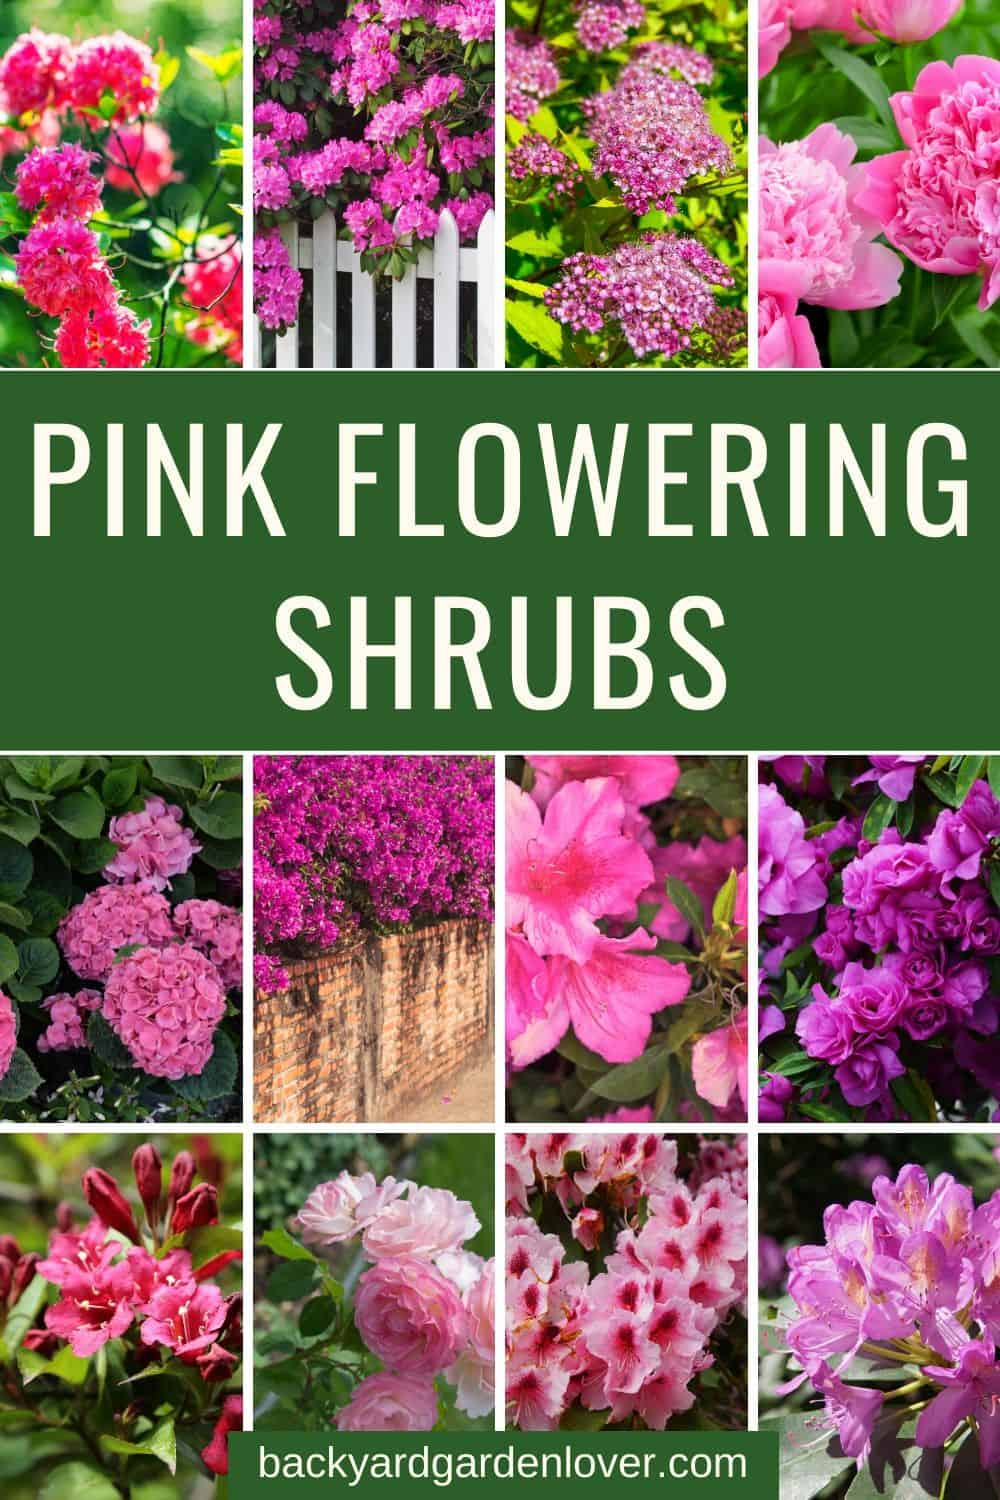 A collection of pink flowering shrubs